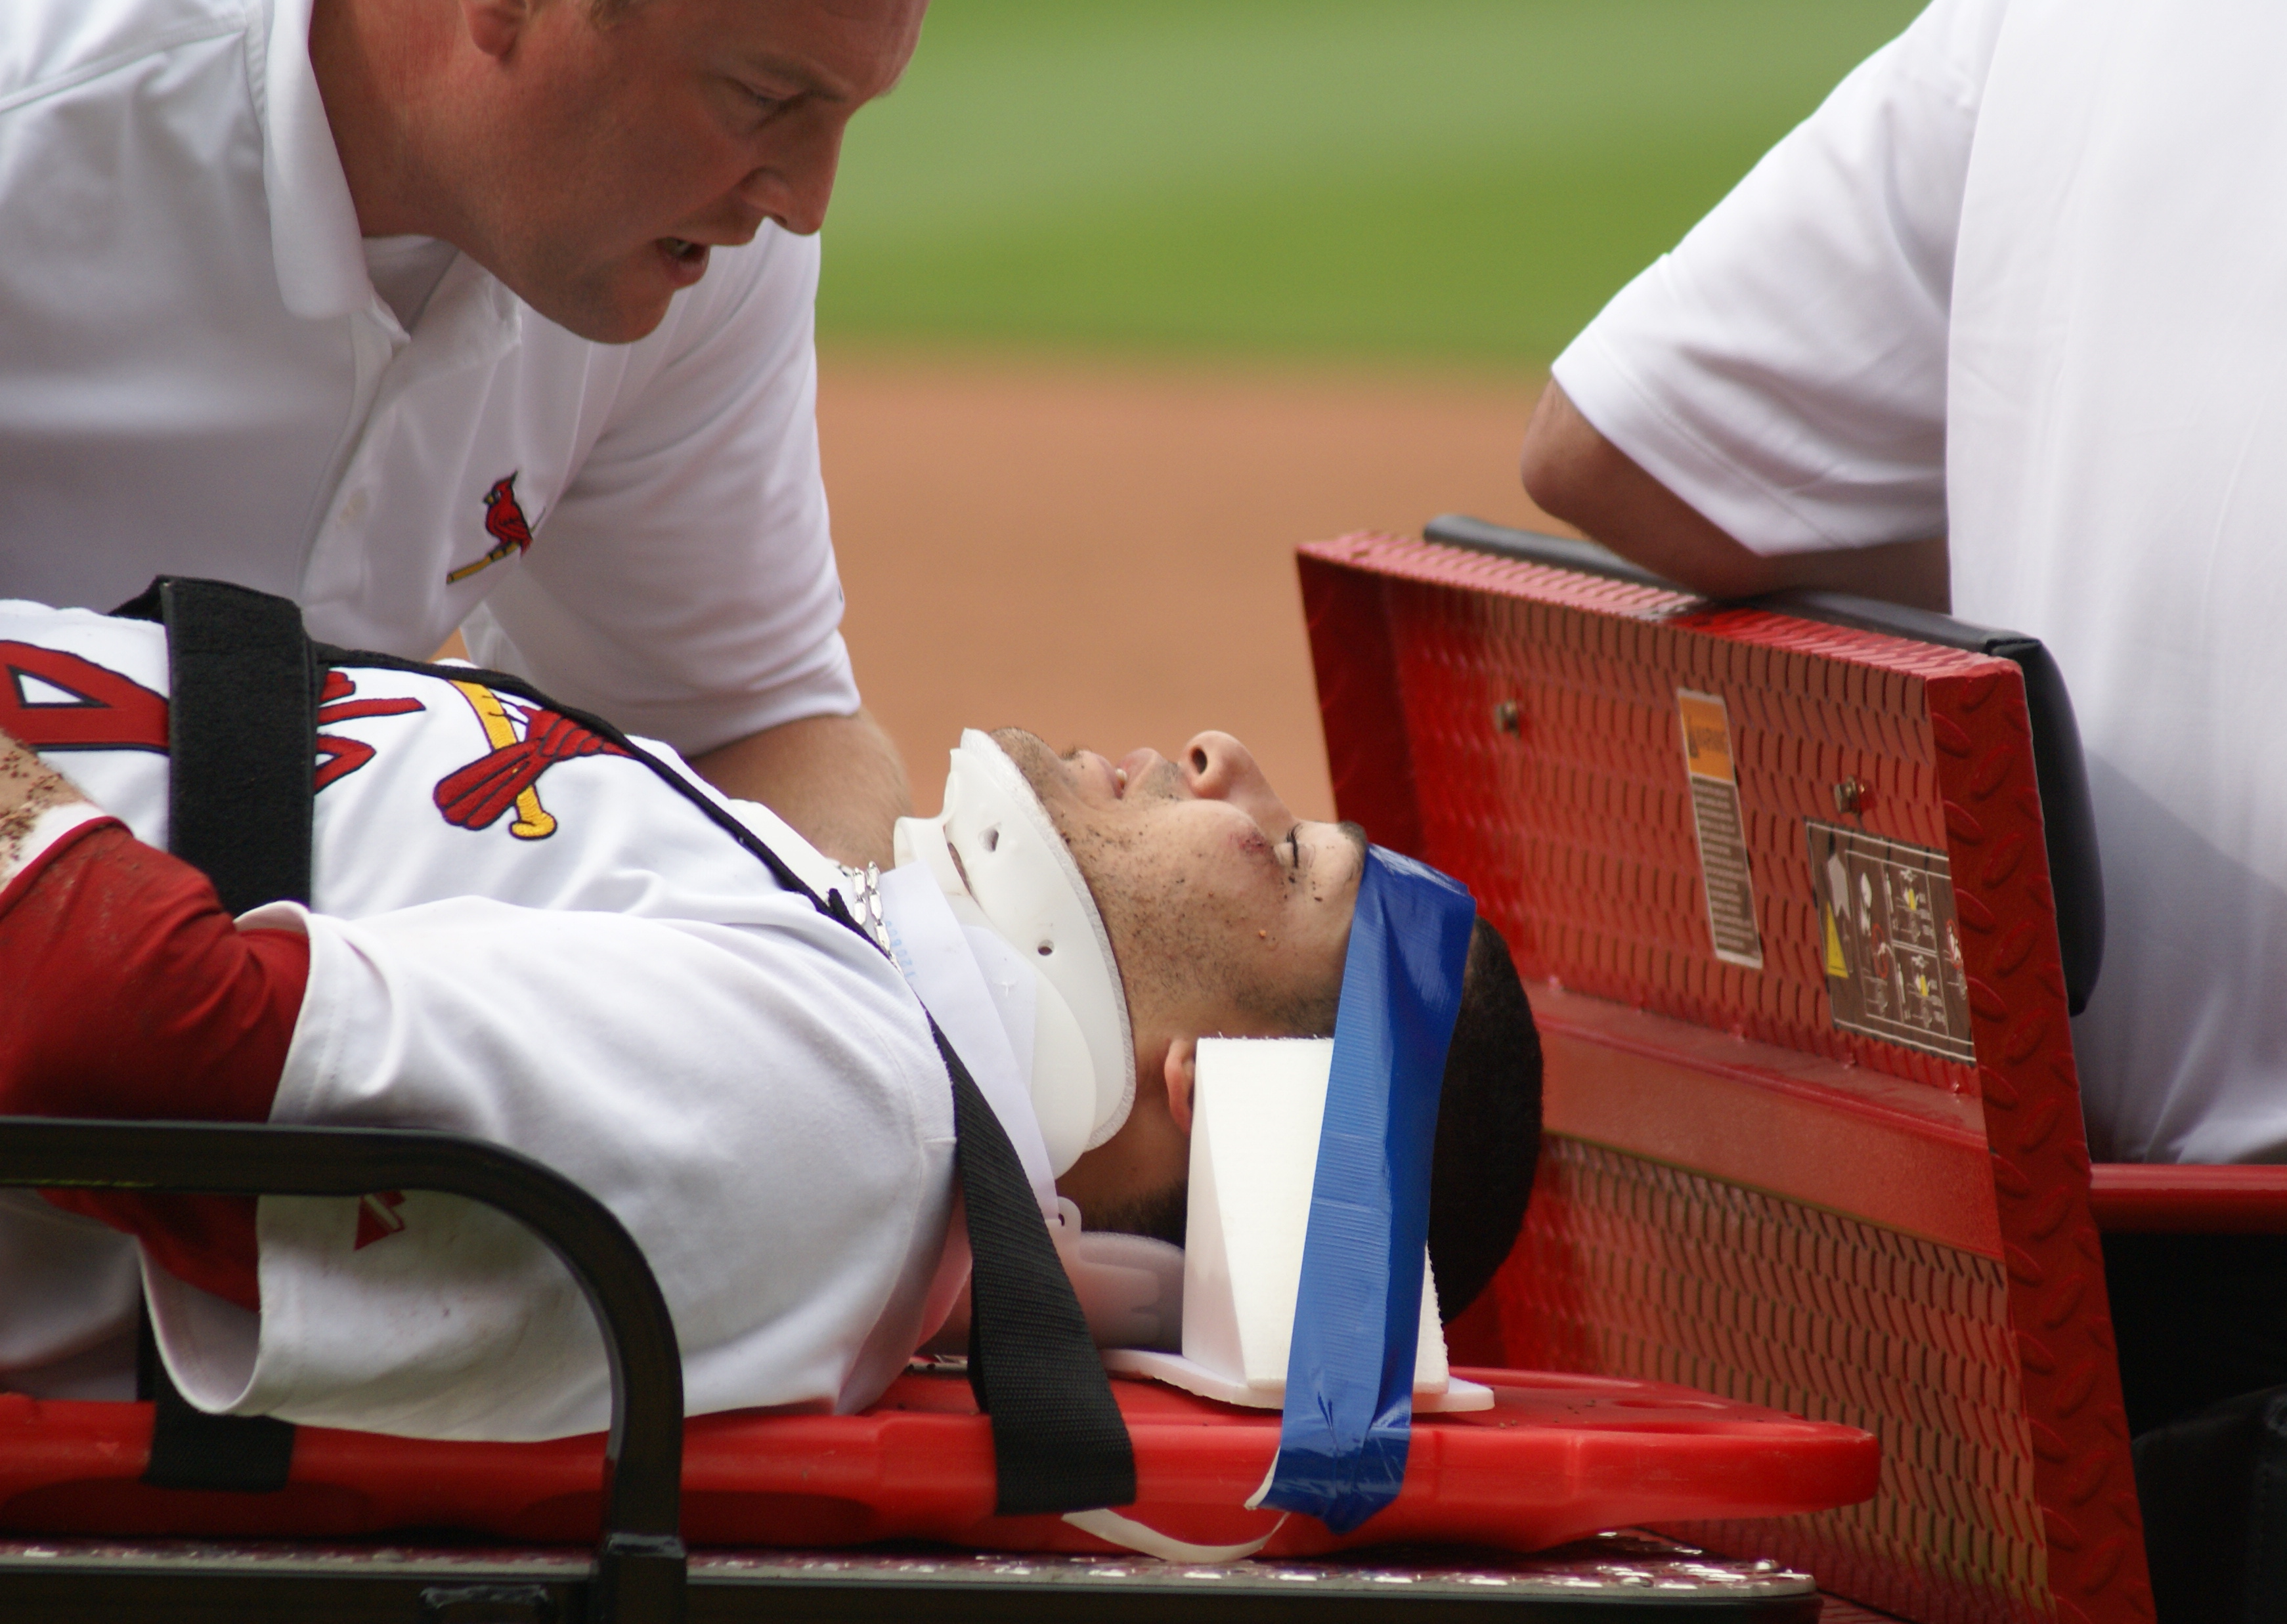 File:Yadier Molina with a concussion in June 2008.jpg